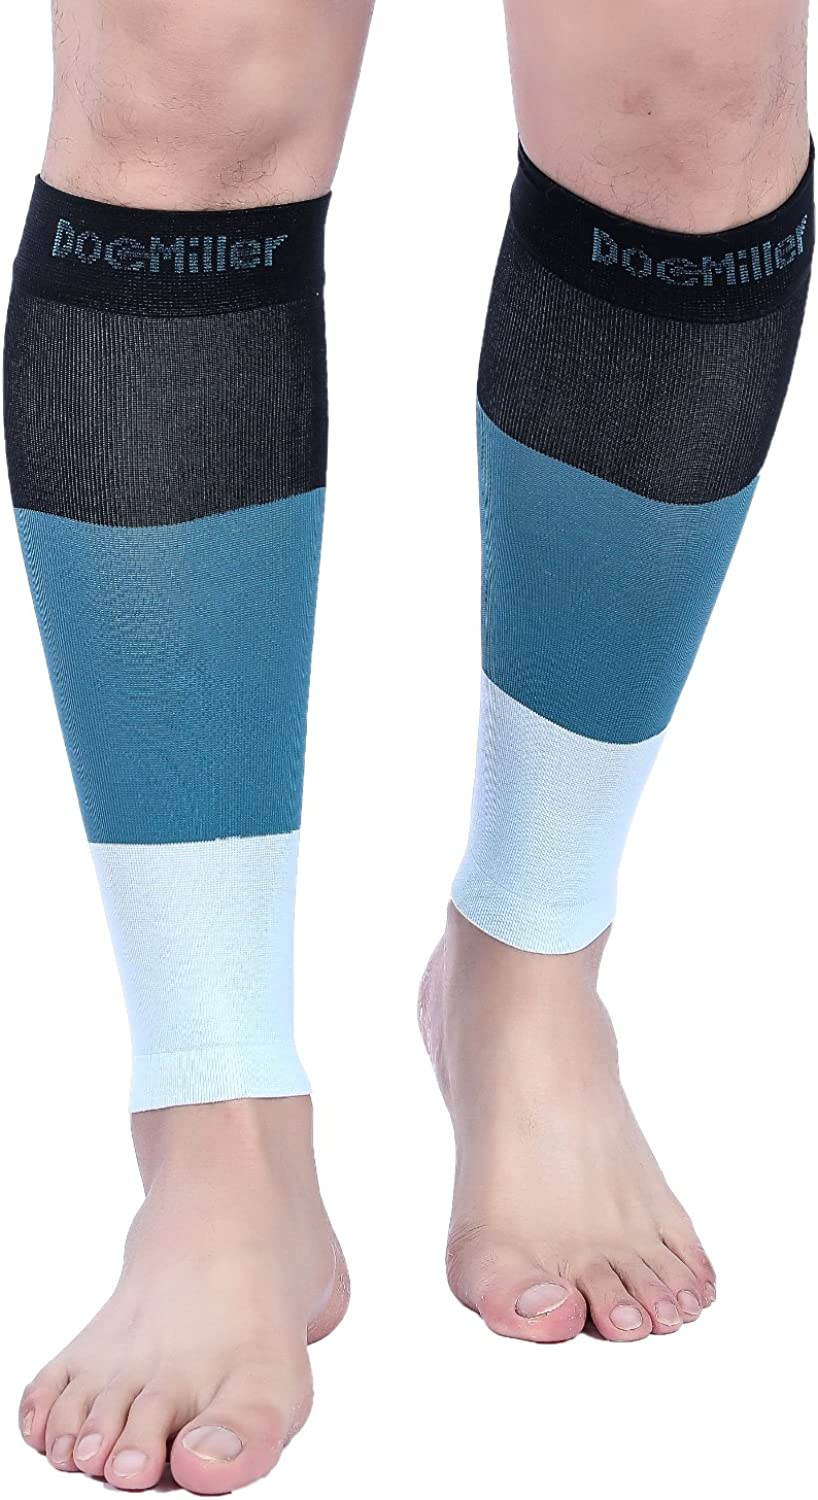 Doc Miller Premium Calf Compression 1 Pair 1520 mmHg Firm Calf